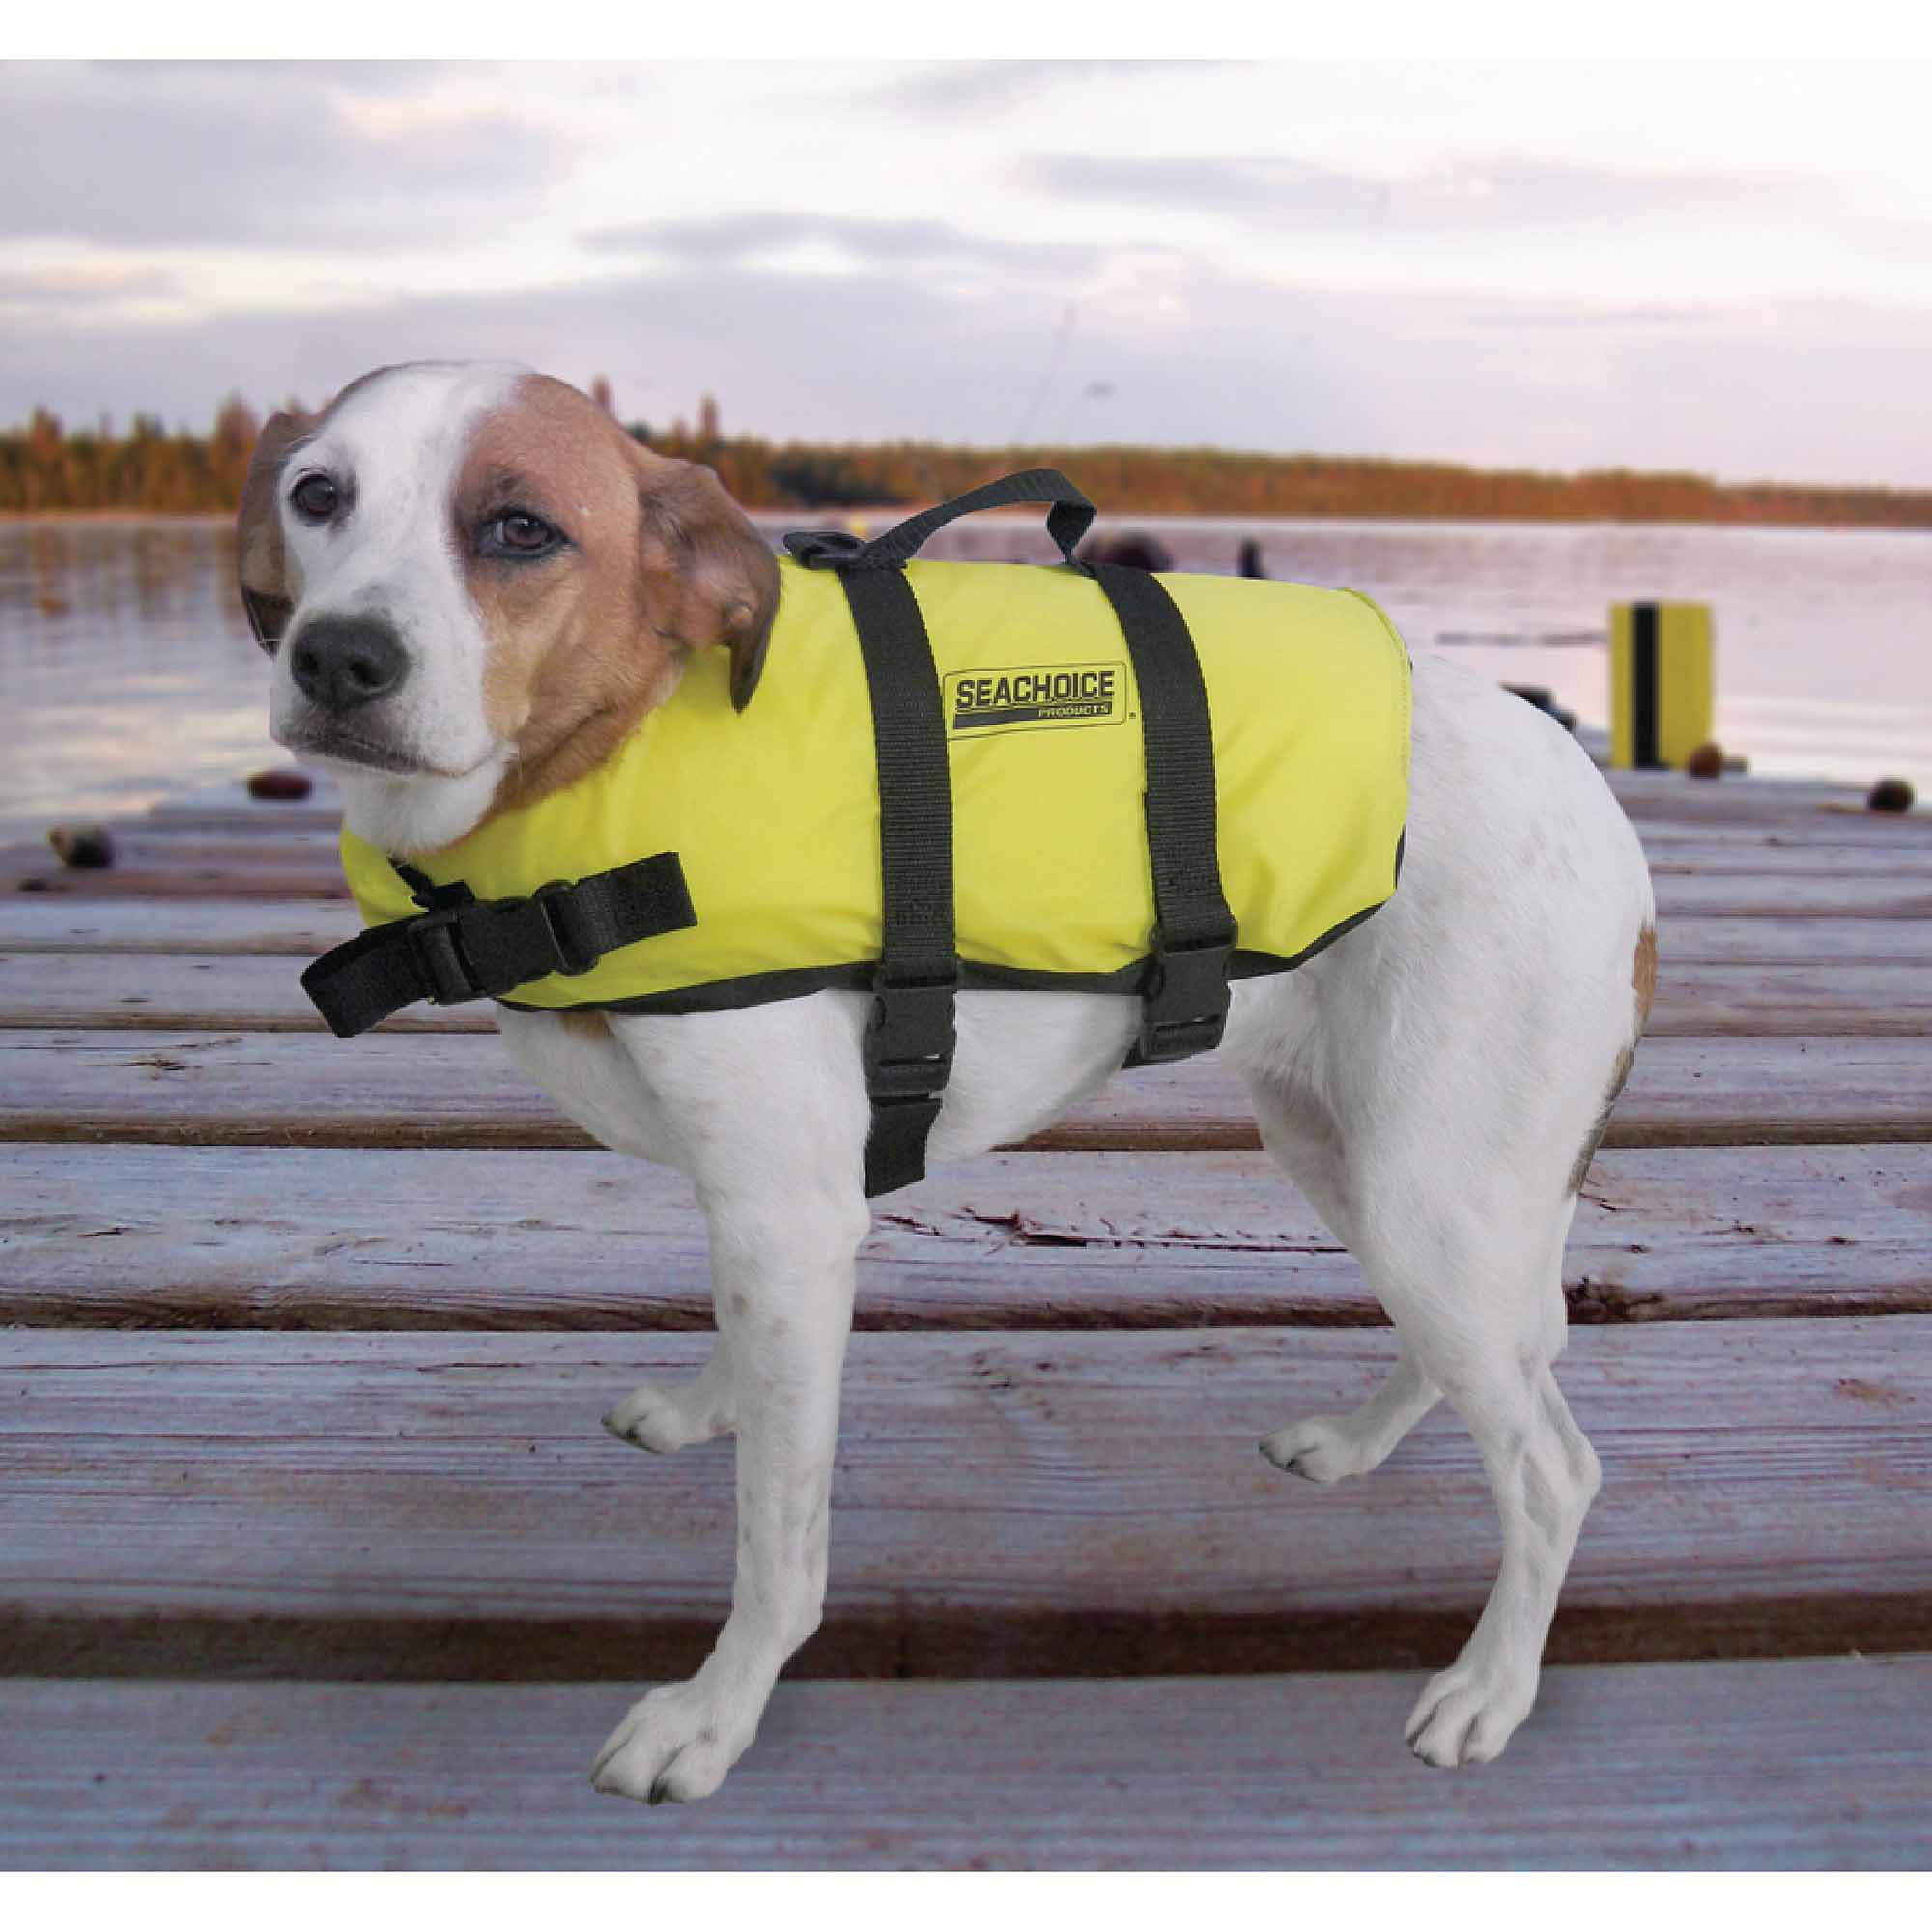 Seachoice Dog Life Vest, Yellow